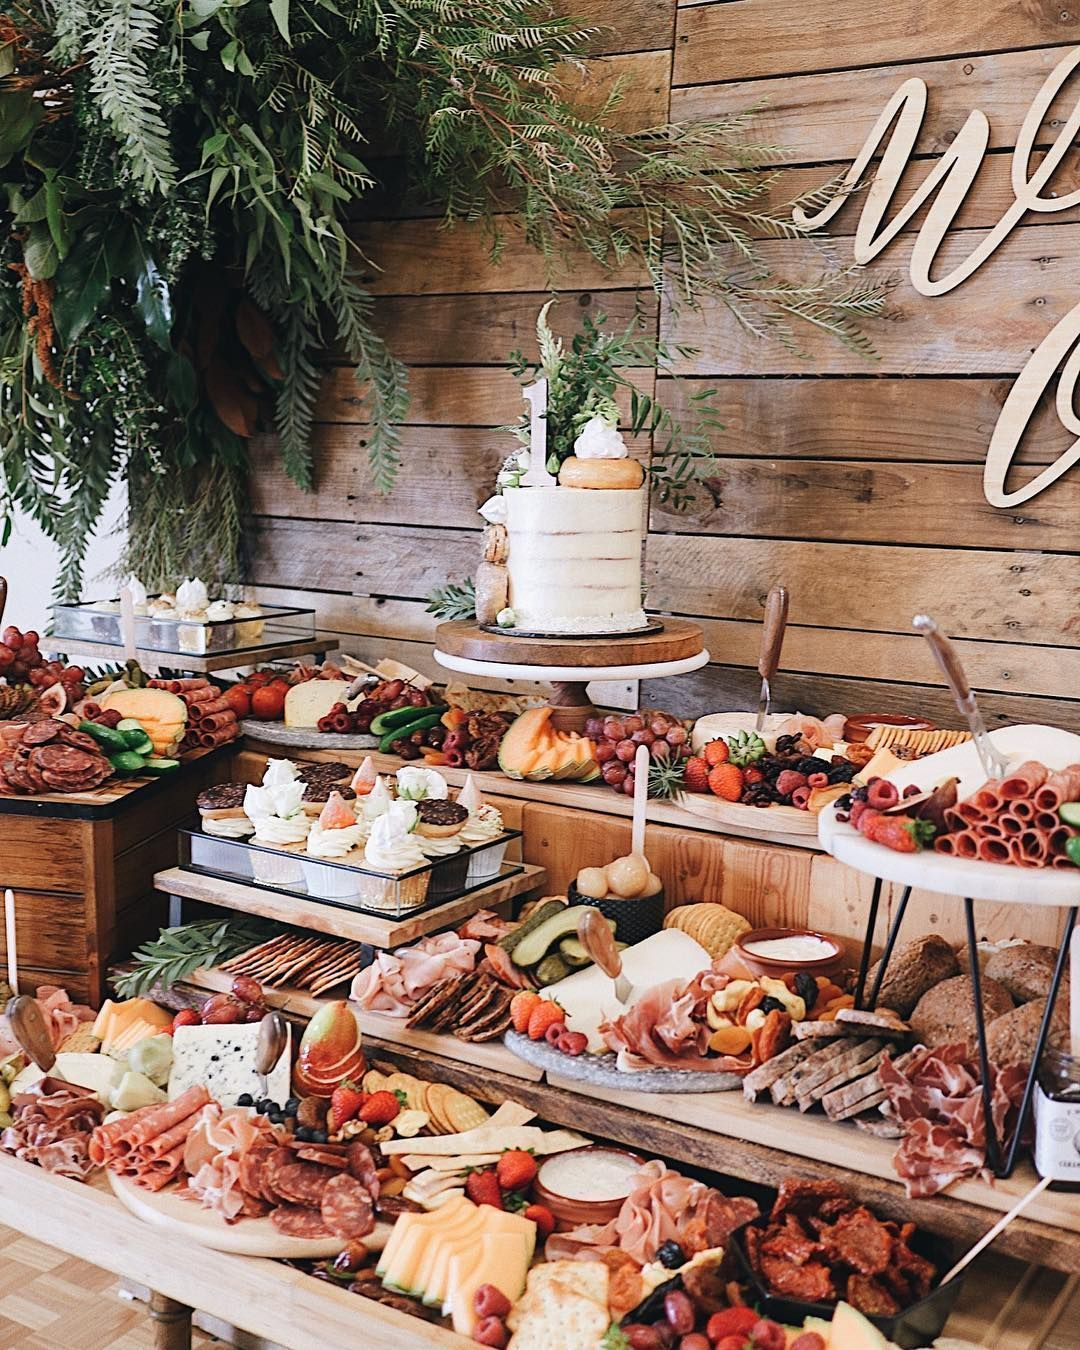 Appetizer Only Wedding Reception: 2020 Wedding Trends: 20 Charcuterie Board Or Table Ideas